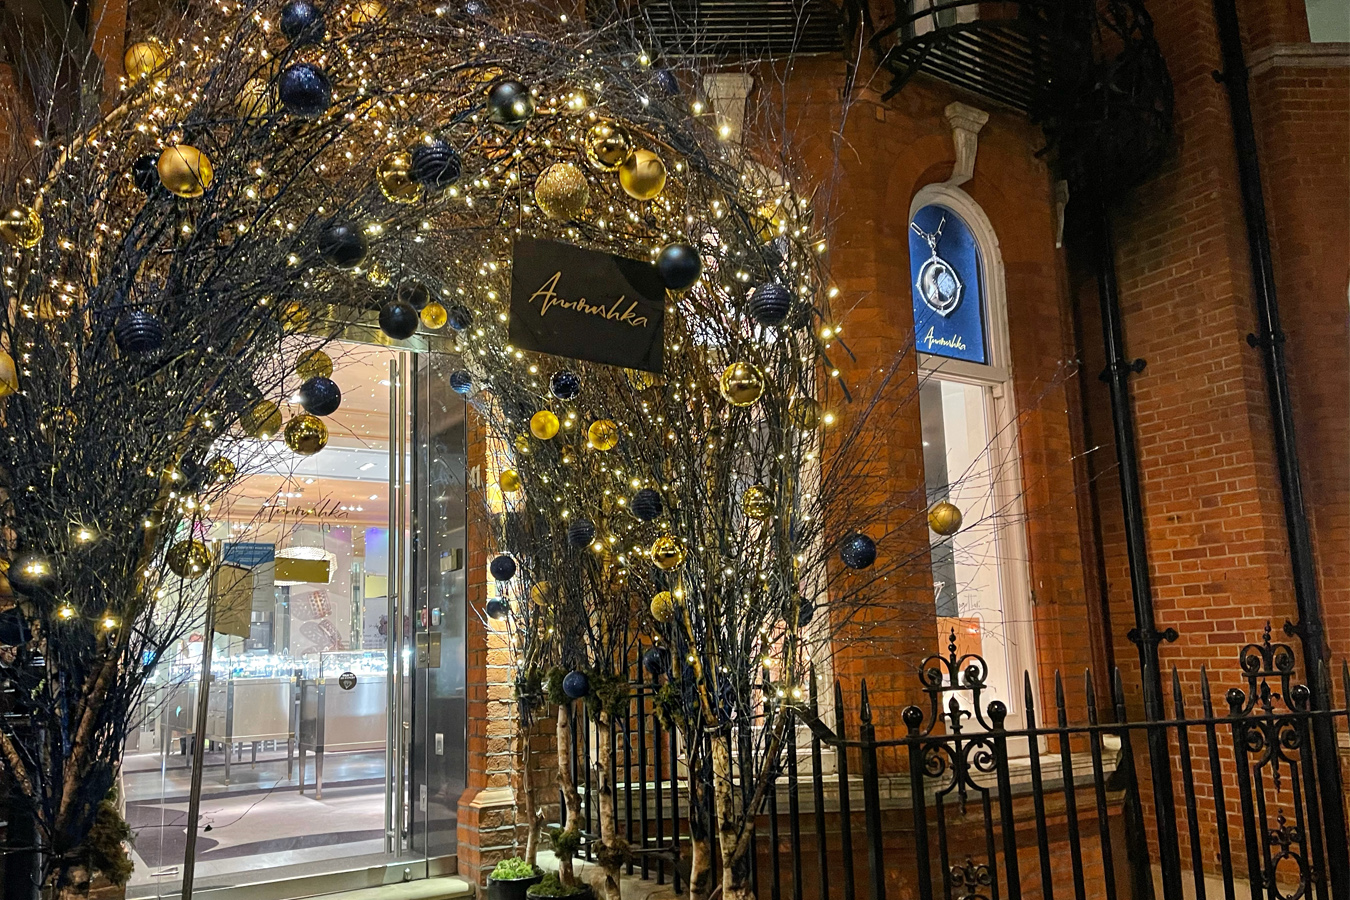 Chelsea at Christmas